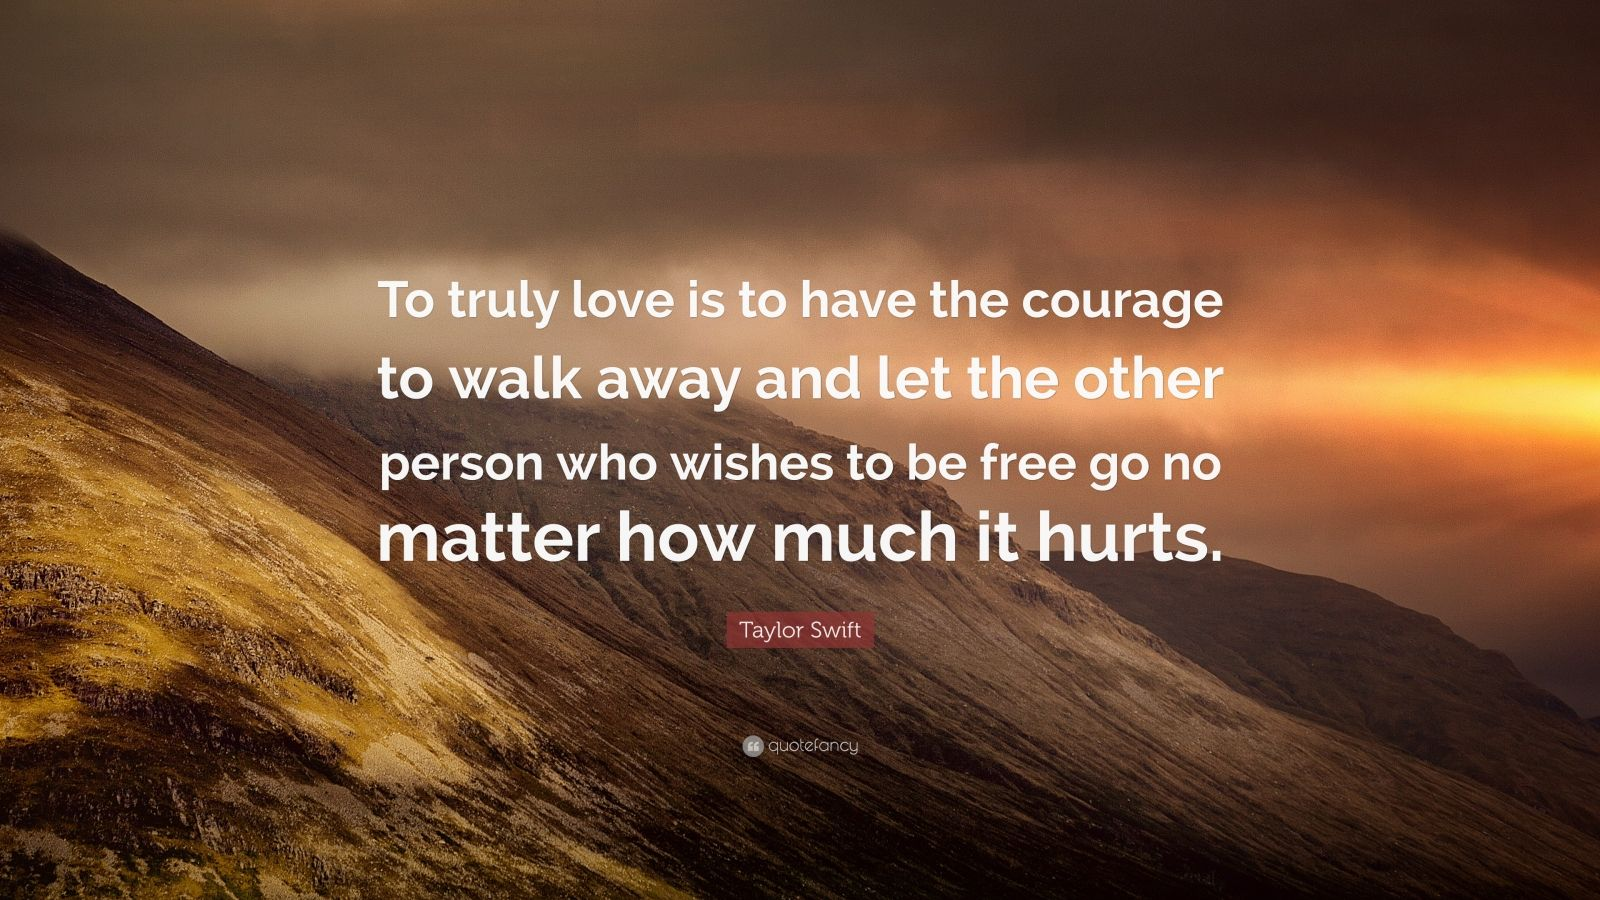 """Taylor Swift Quote: """"To truly love is to have the courage to walk away and let the other person who wishes to be free go no matter how much it hurts."""""""